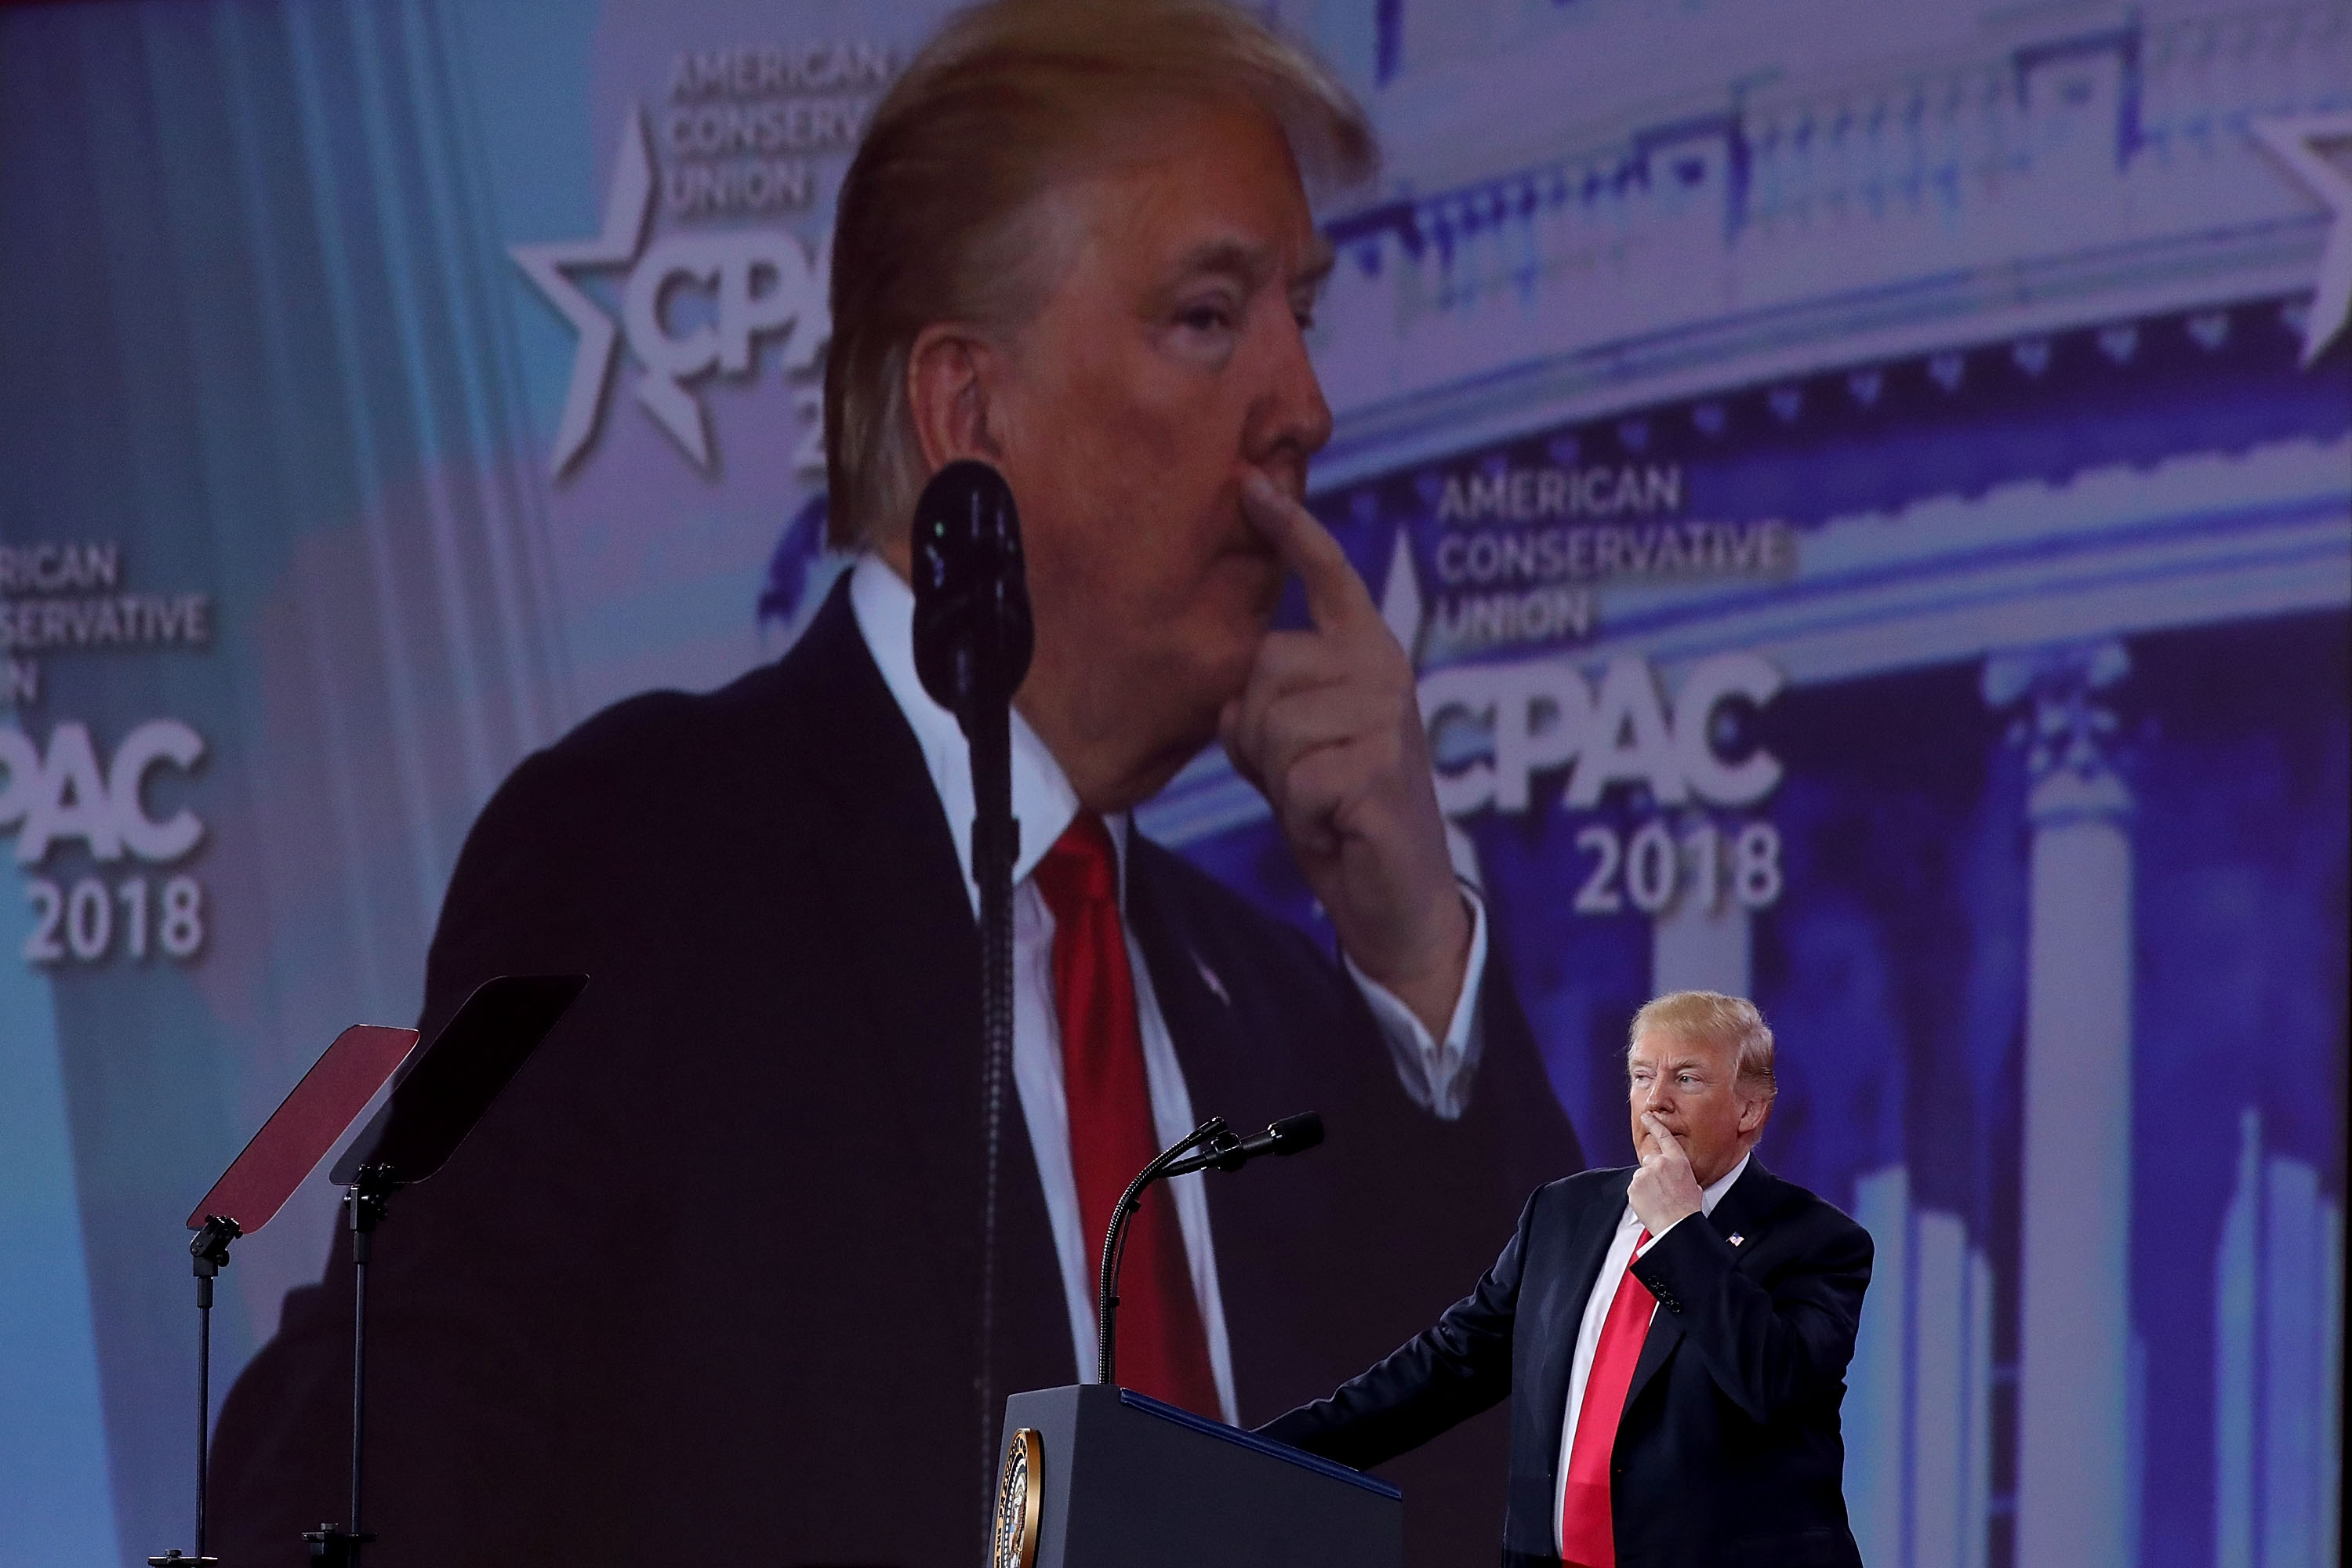 Donald Trump's CPAC speech is a reminder that he's not really in charge of his White House